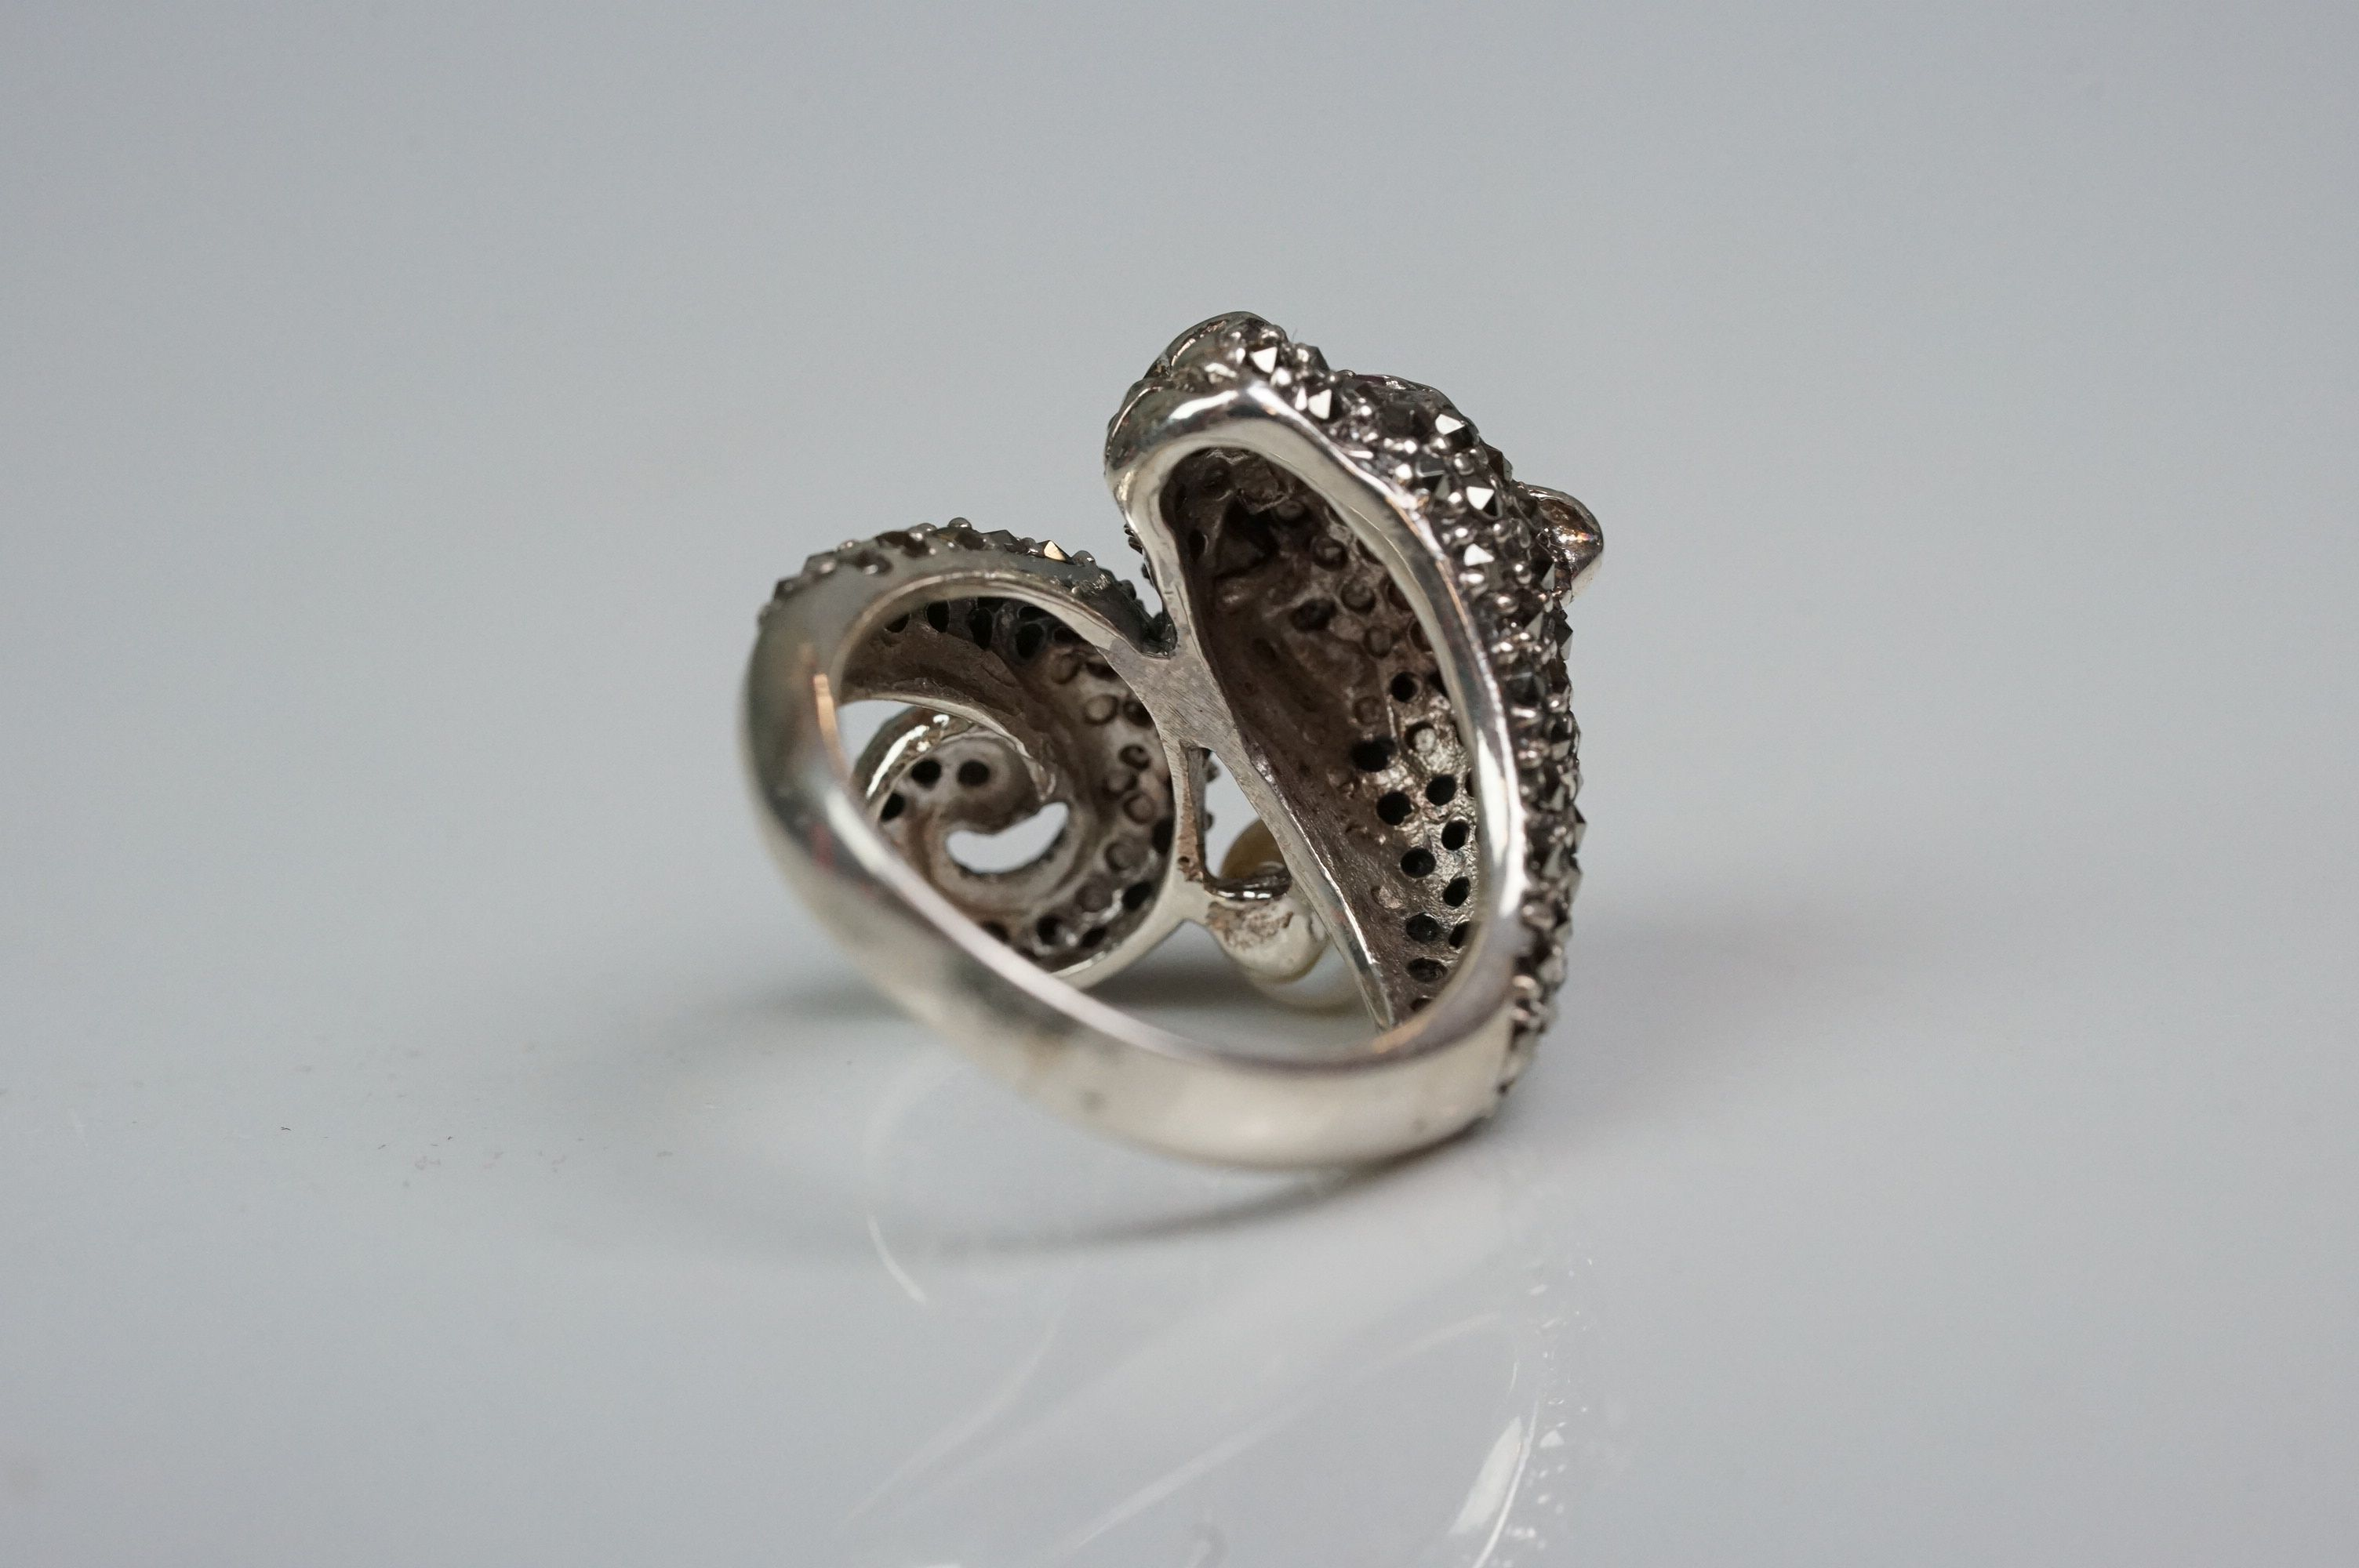 Silver panther ring, set with marcasites and ruby eyes - Image 6 of 6